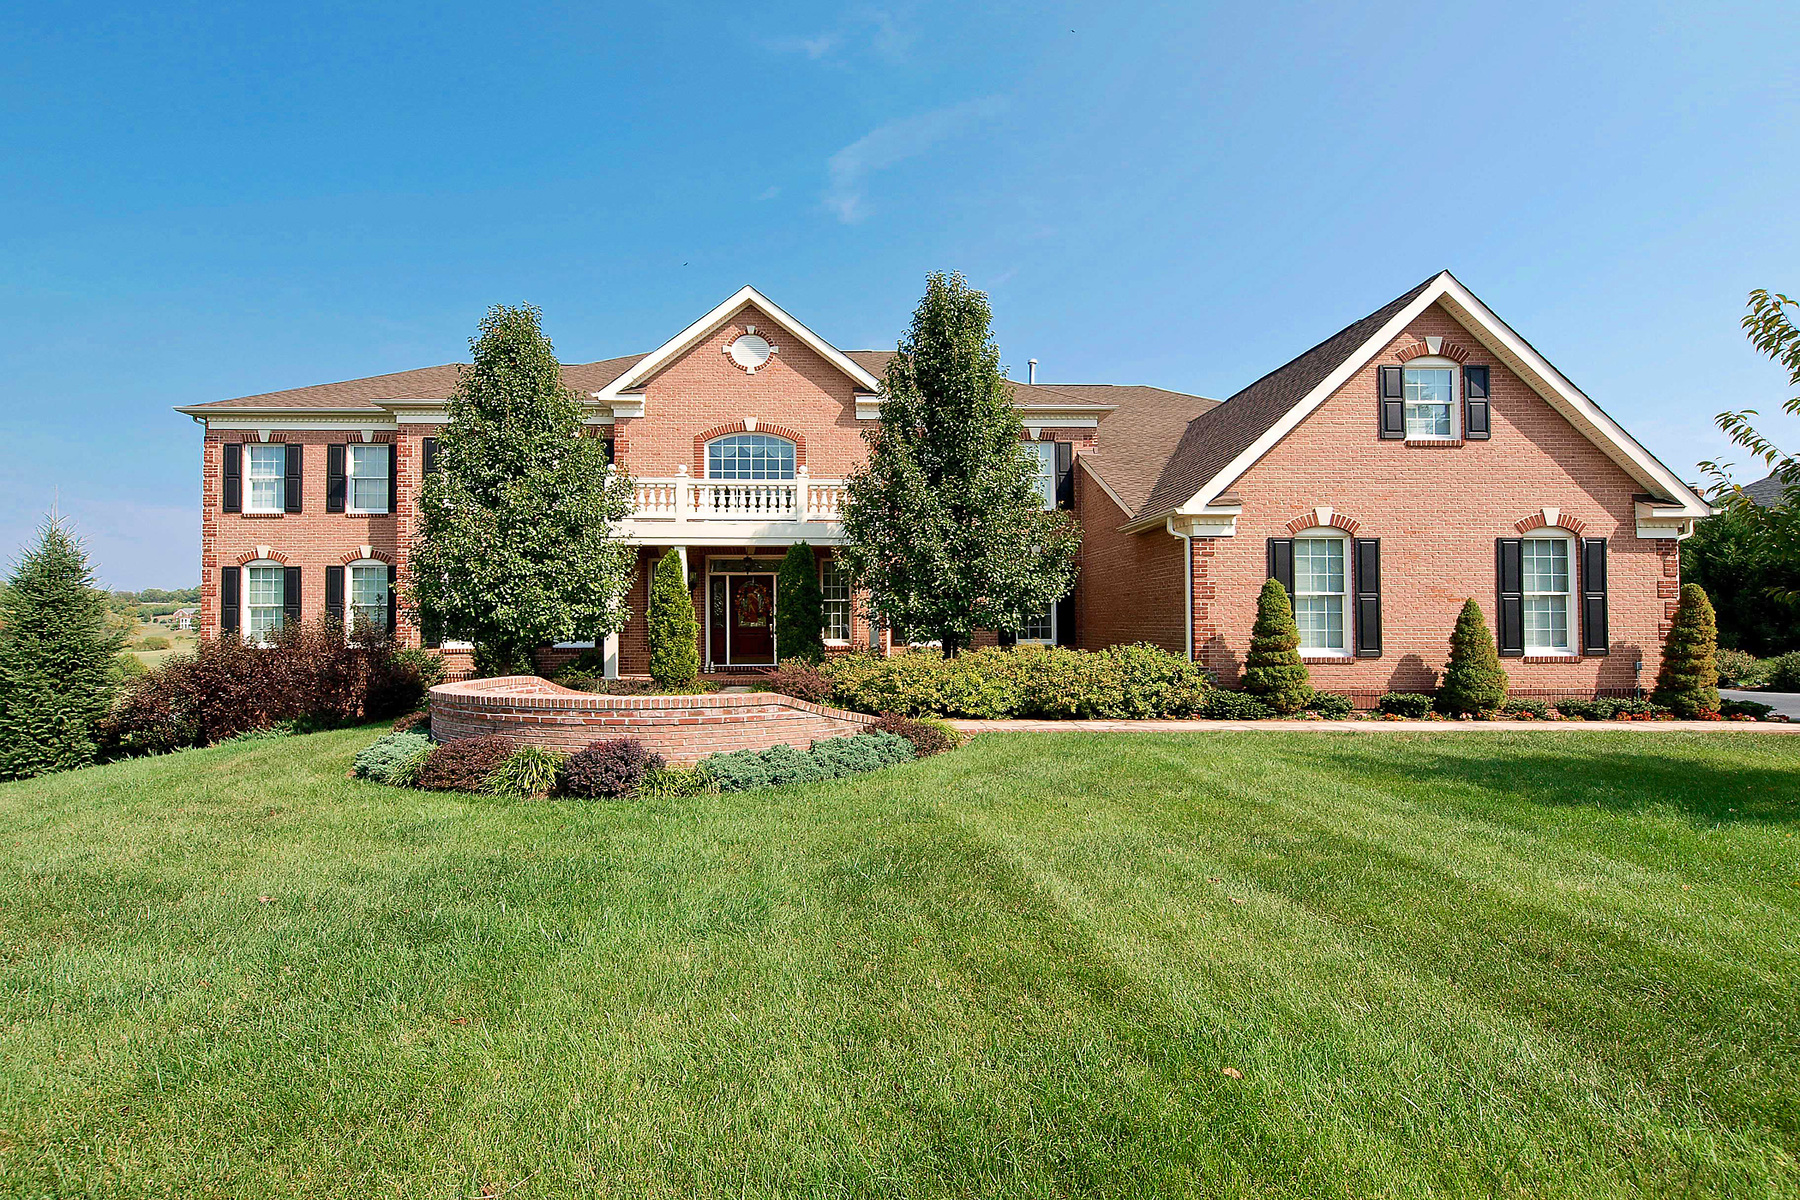 Single Family Home for Sale at 17640 Braemar Place, Leesburg Leesburg, Virginia 20175 United States